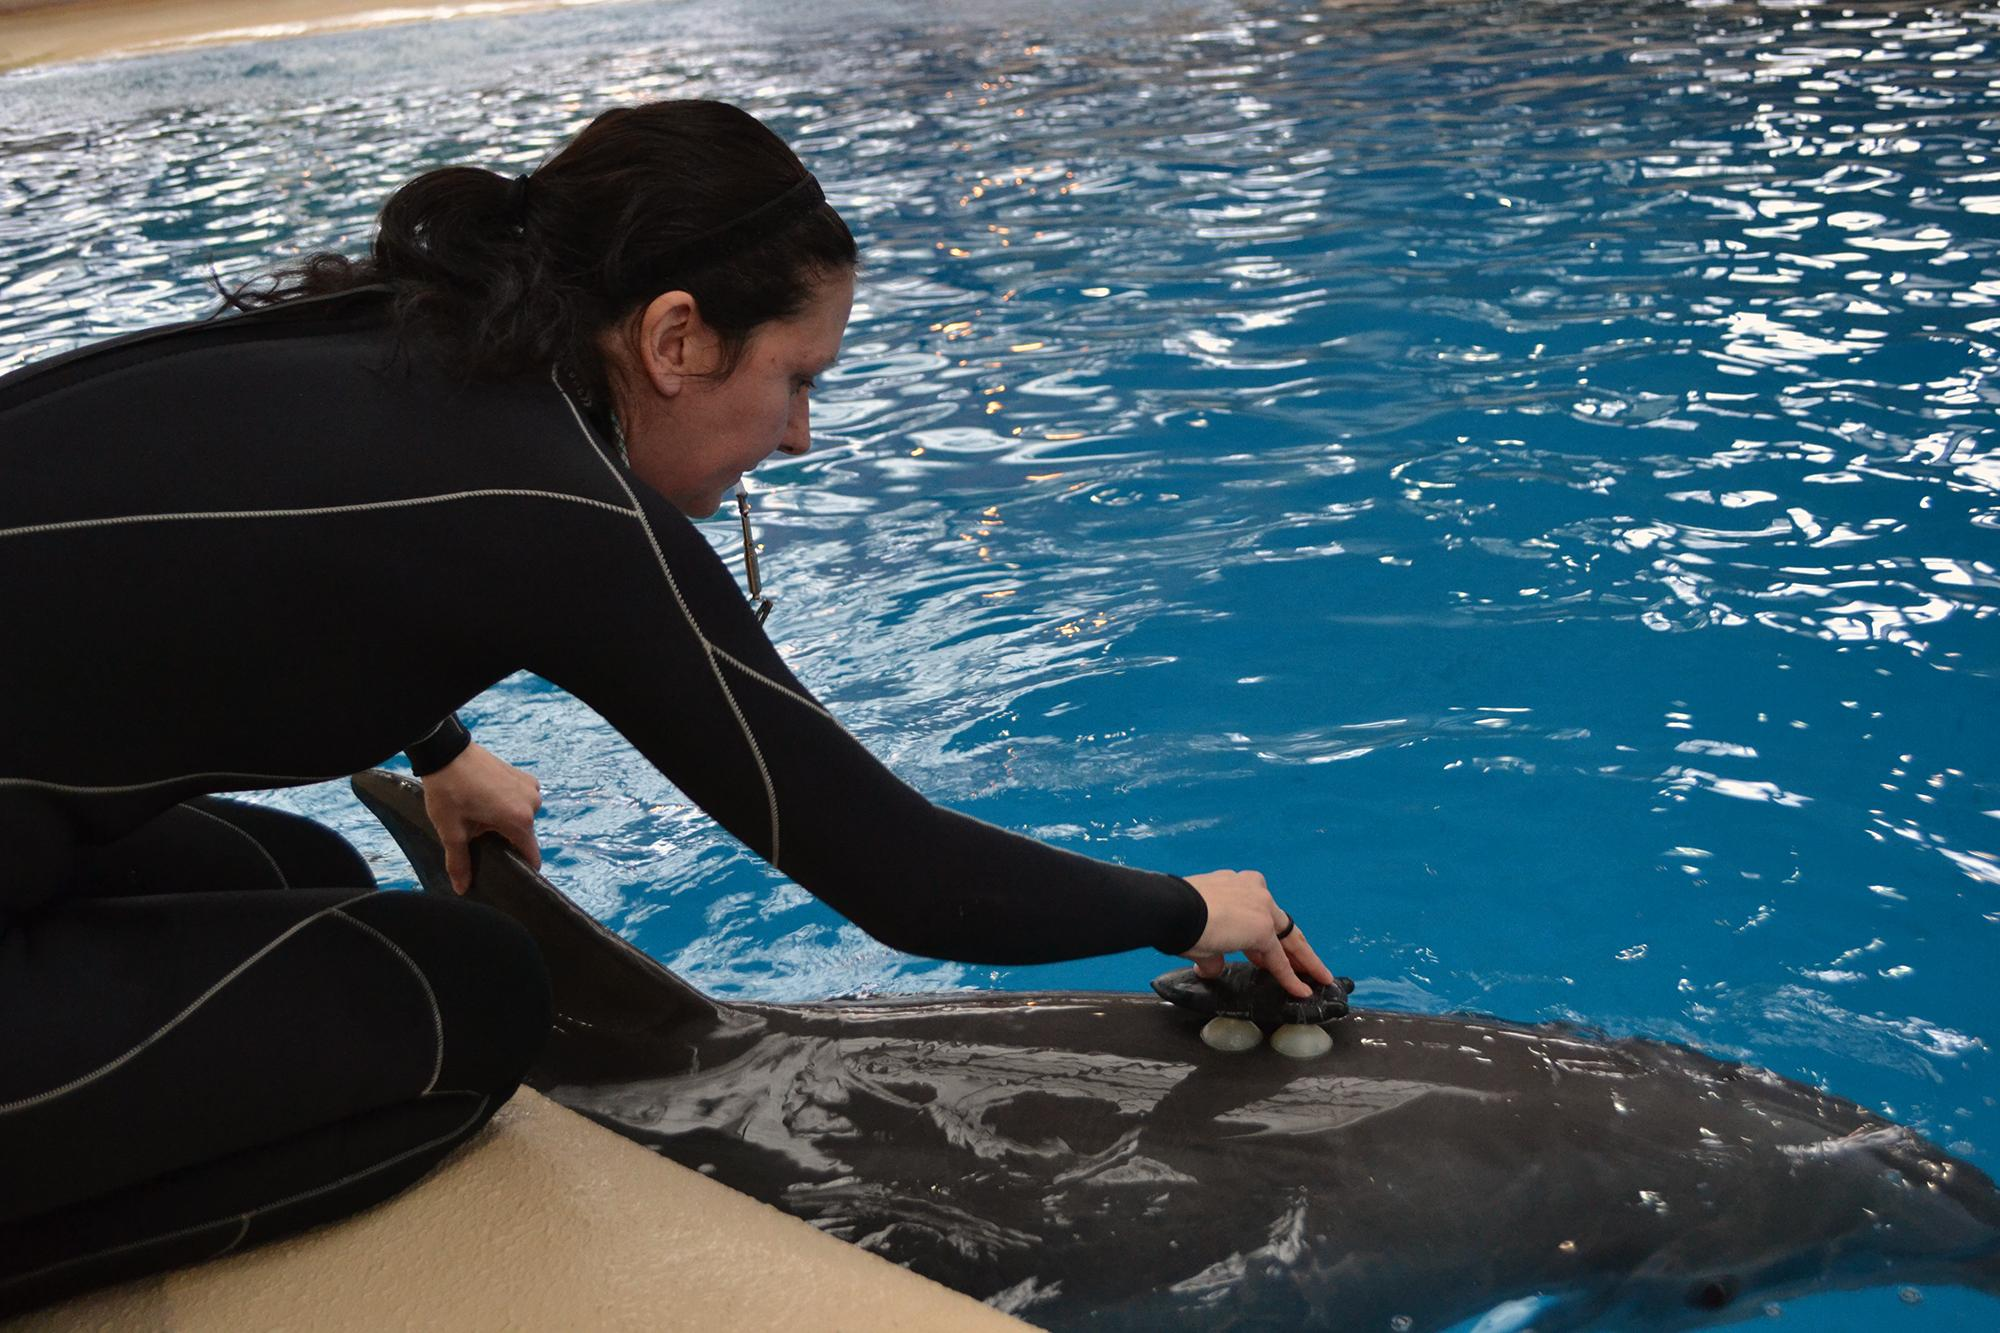 Brookfield Zoo senior animal care specialist Melissa Zabjonik attaches a bio-logging device to the back of Spree, a 14-year-old female bottlenose dolphin. (Alex Ruppenthal / Chicago Tonight)